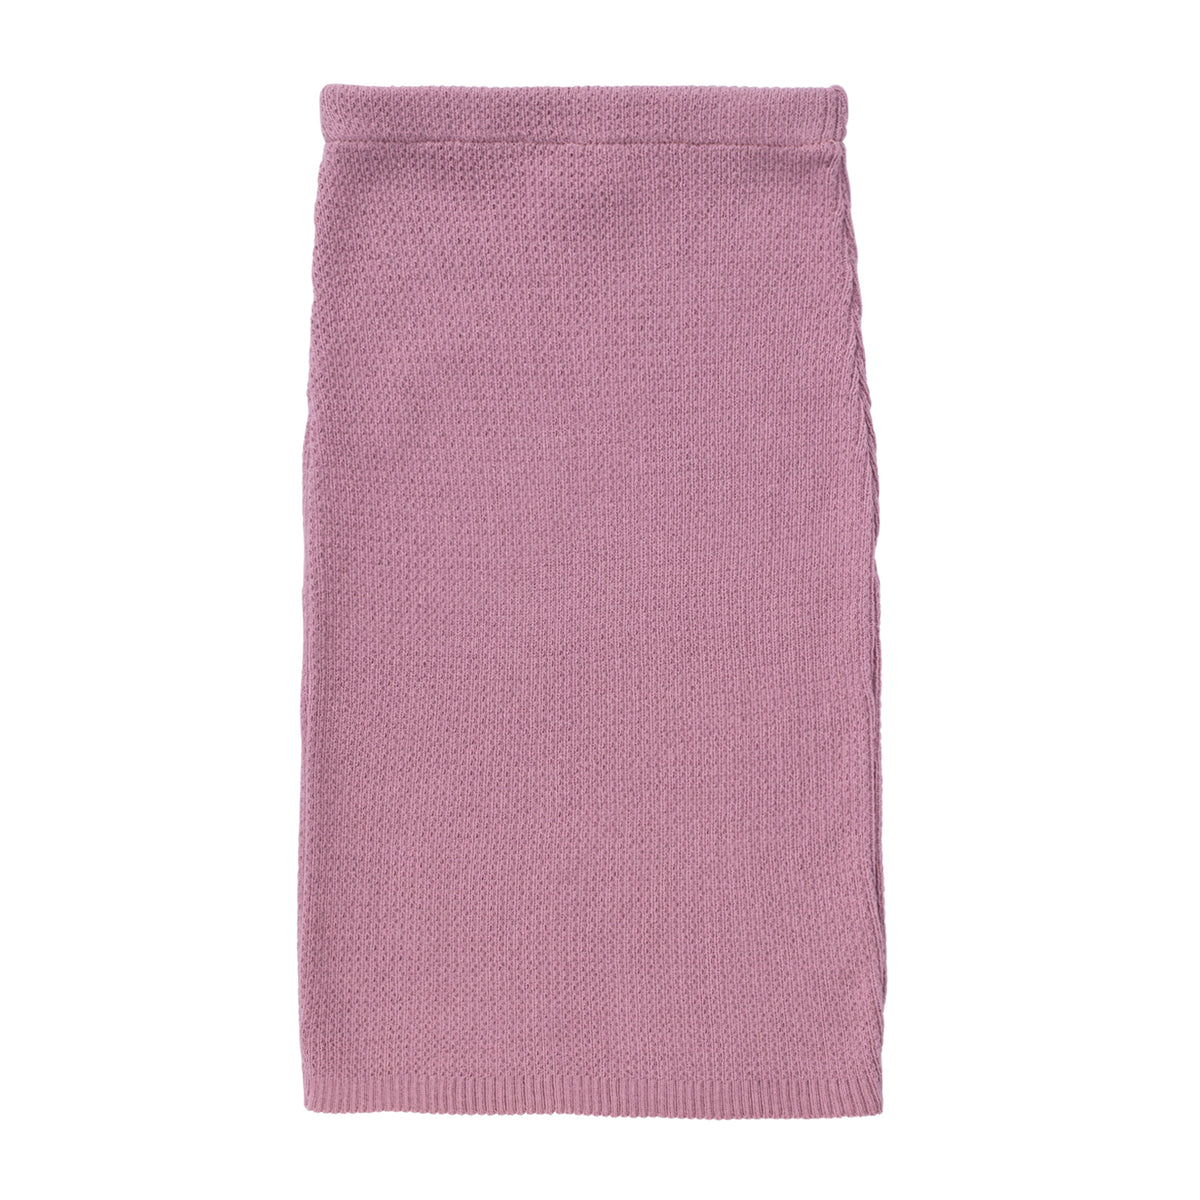 Knit Ribbed Pencil Skirt ~ Lavender